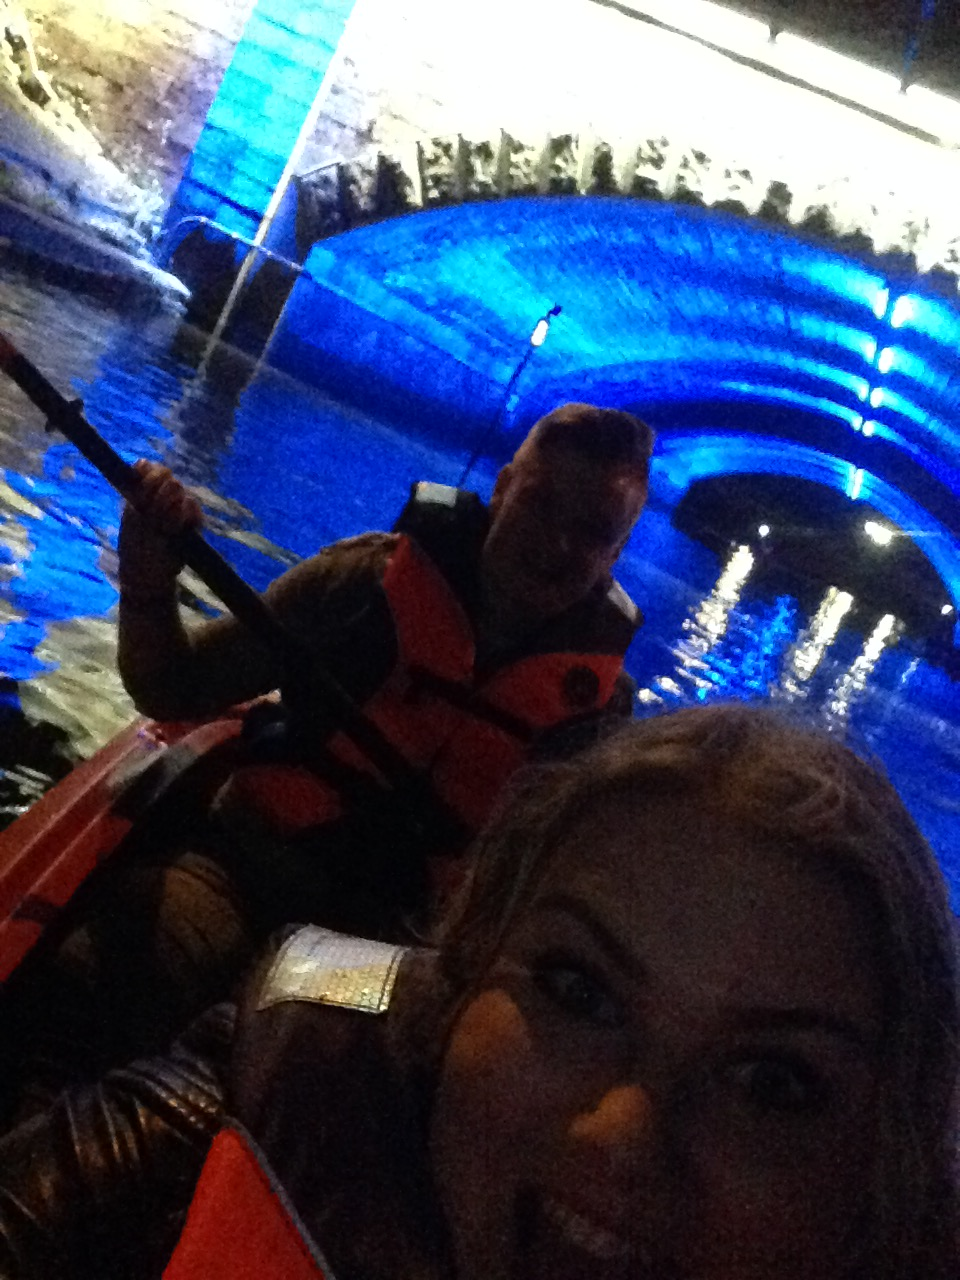 A kayaking selfie taken after passing under one of the illuminated bridges in the canal system. You can buy waterproof phone carry cases to prevent you drowning and/or losing your phone.